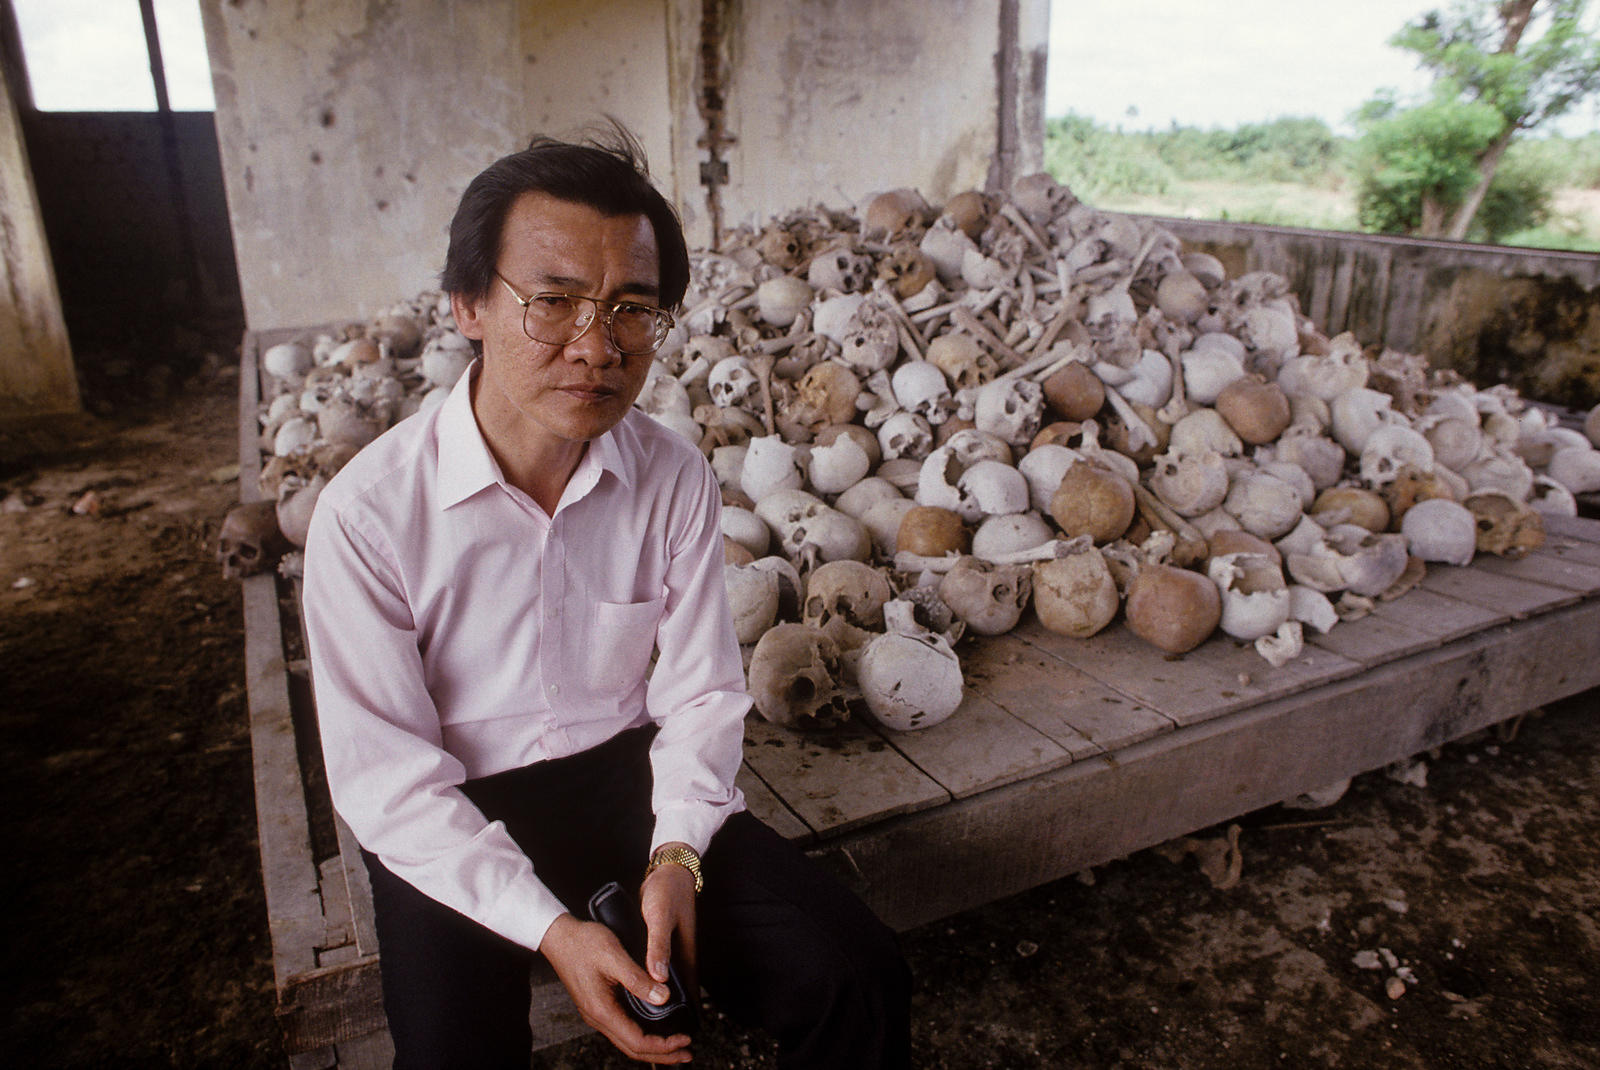 Haing Ngor visiting pile of skulls